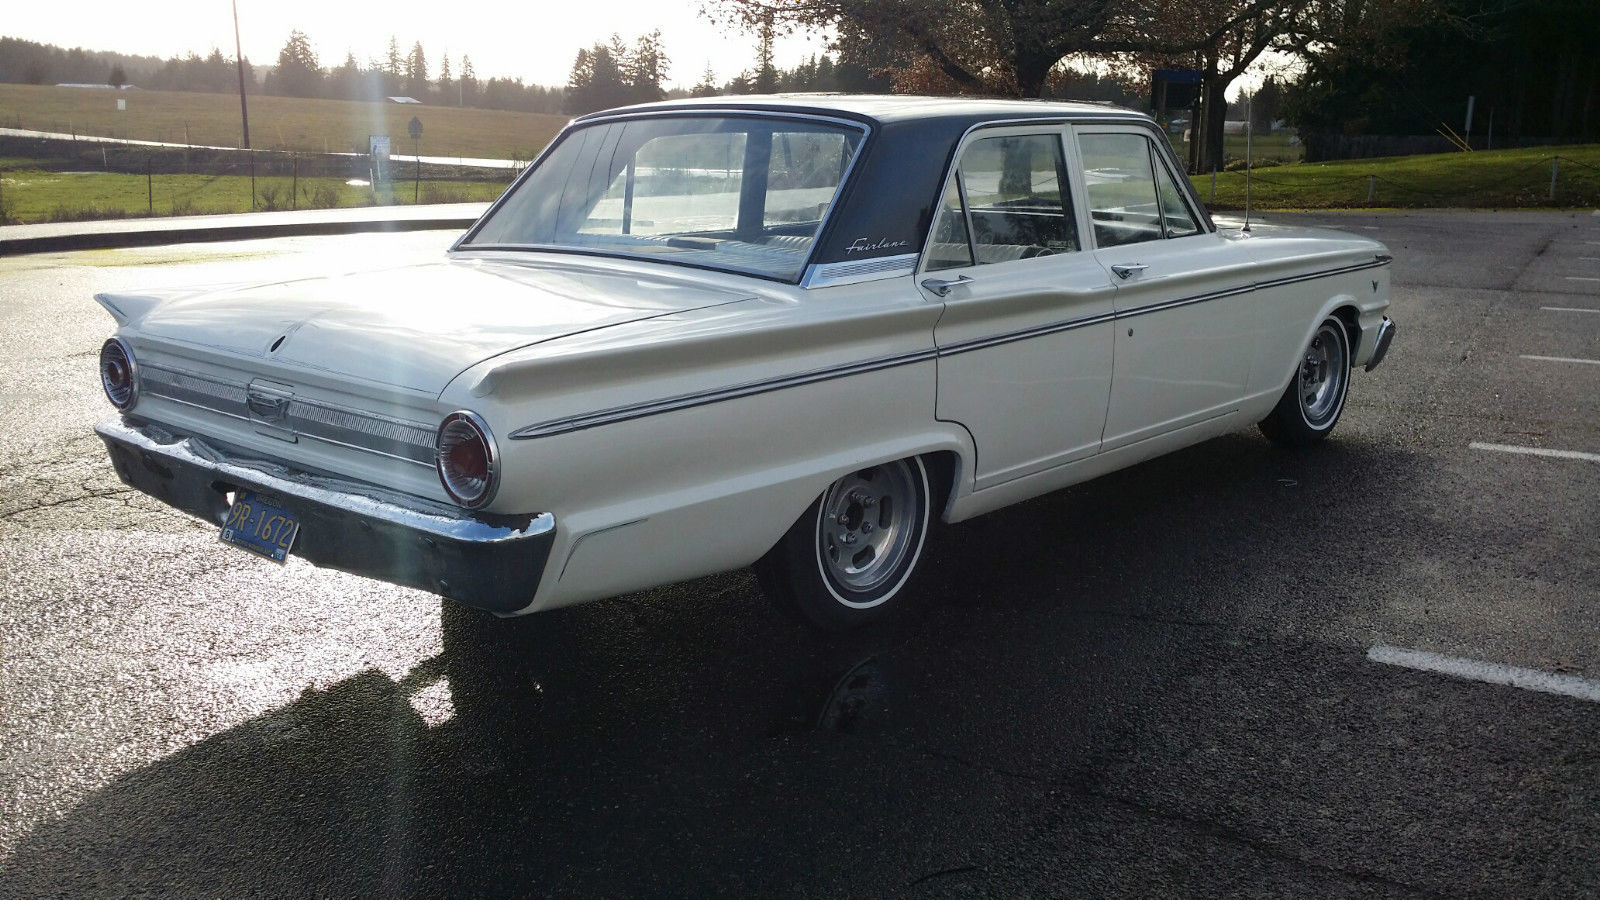 1963 Ford Fairlane Traditional Hot Rat Rod V 8 Sedan For